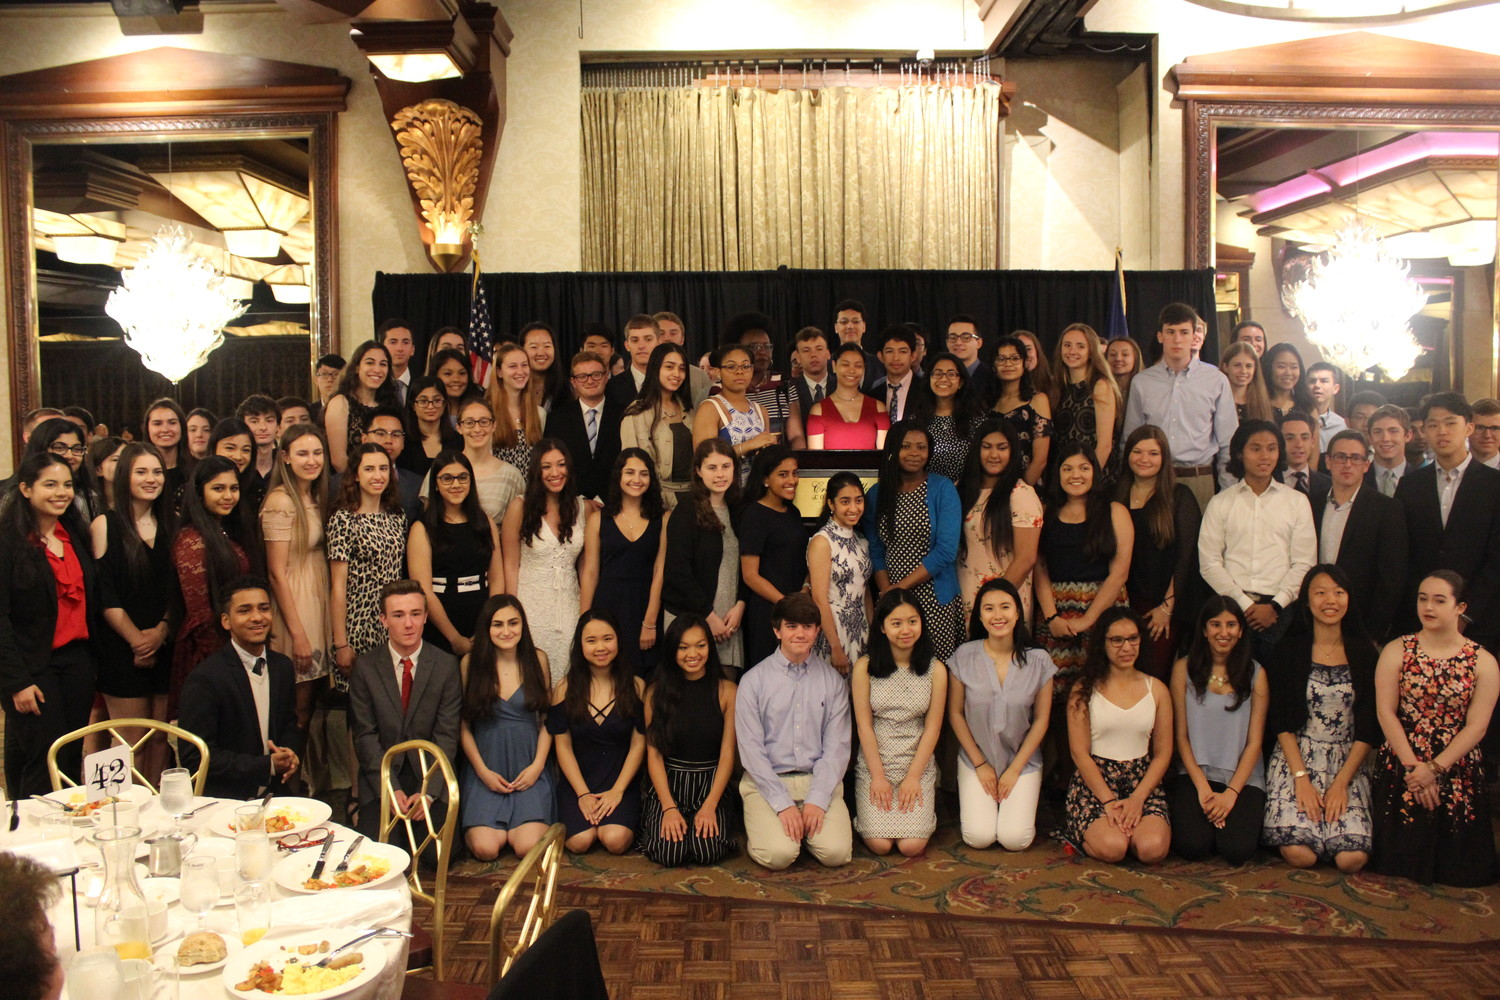 Nassau County's valedictorians and salutatorians were recognized for their achievements at a June 1 breakfast hosted by the Nassau County Council of School Superintendents.